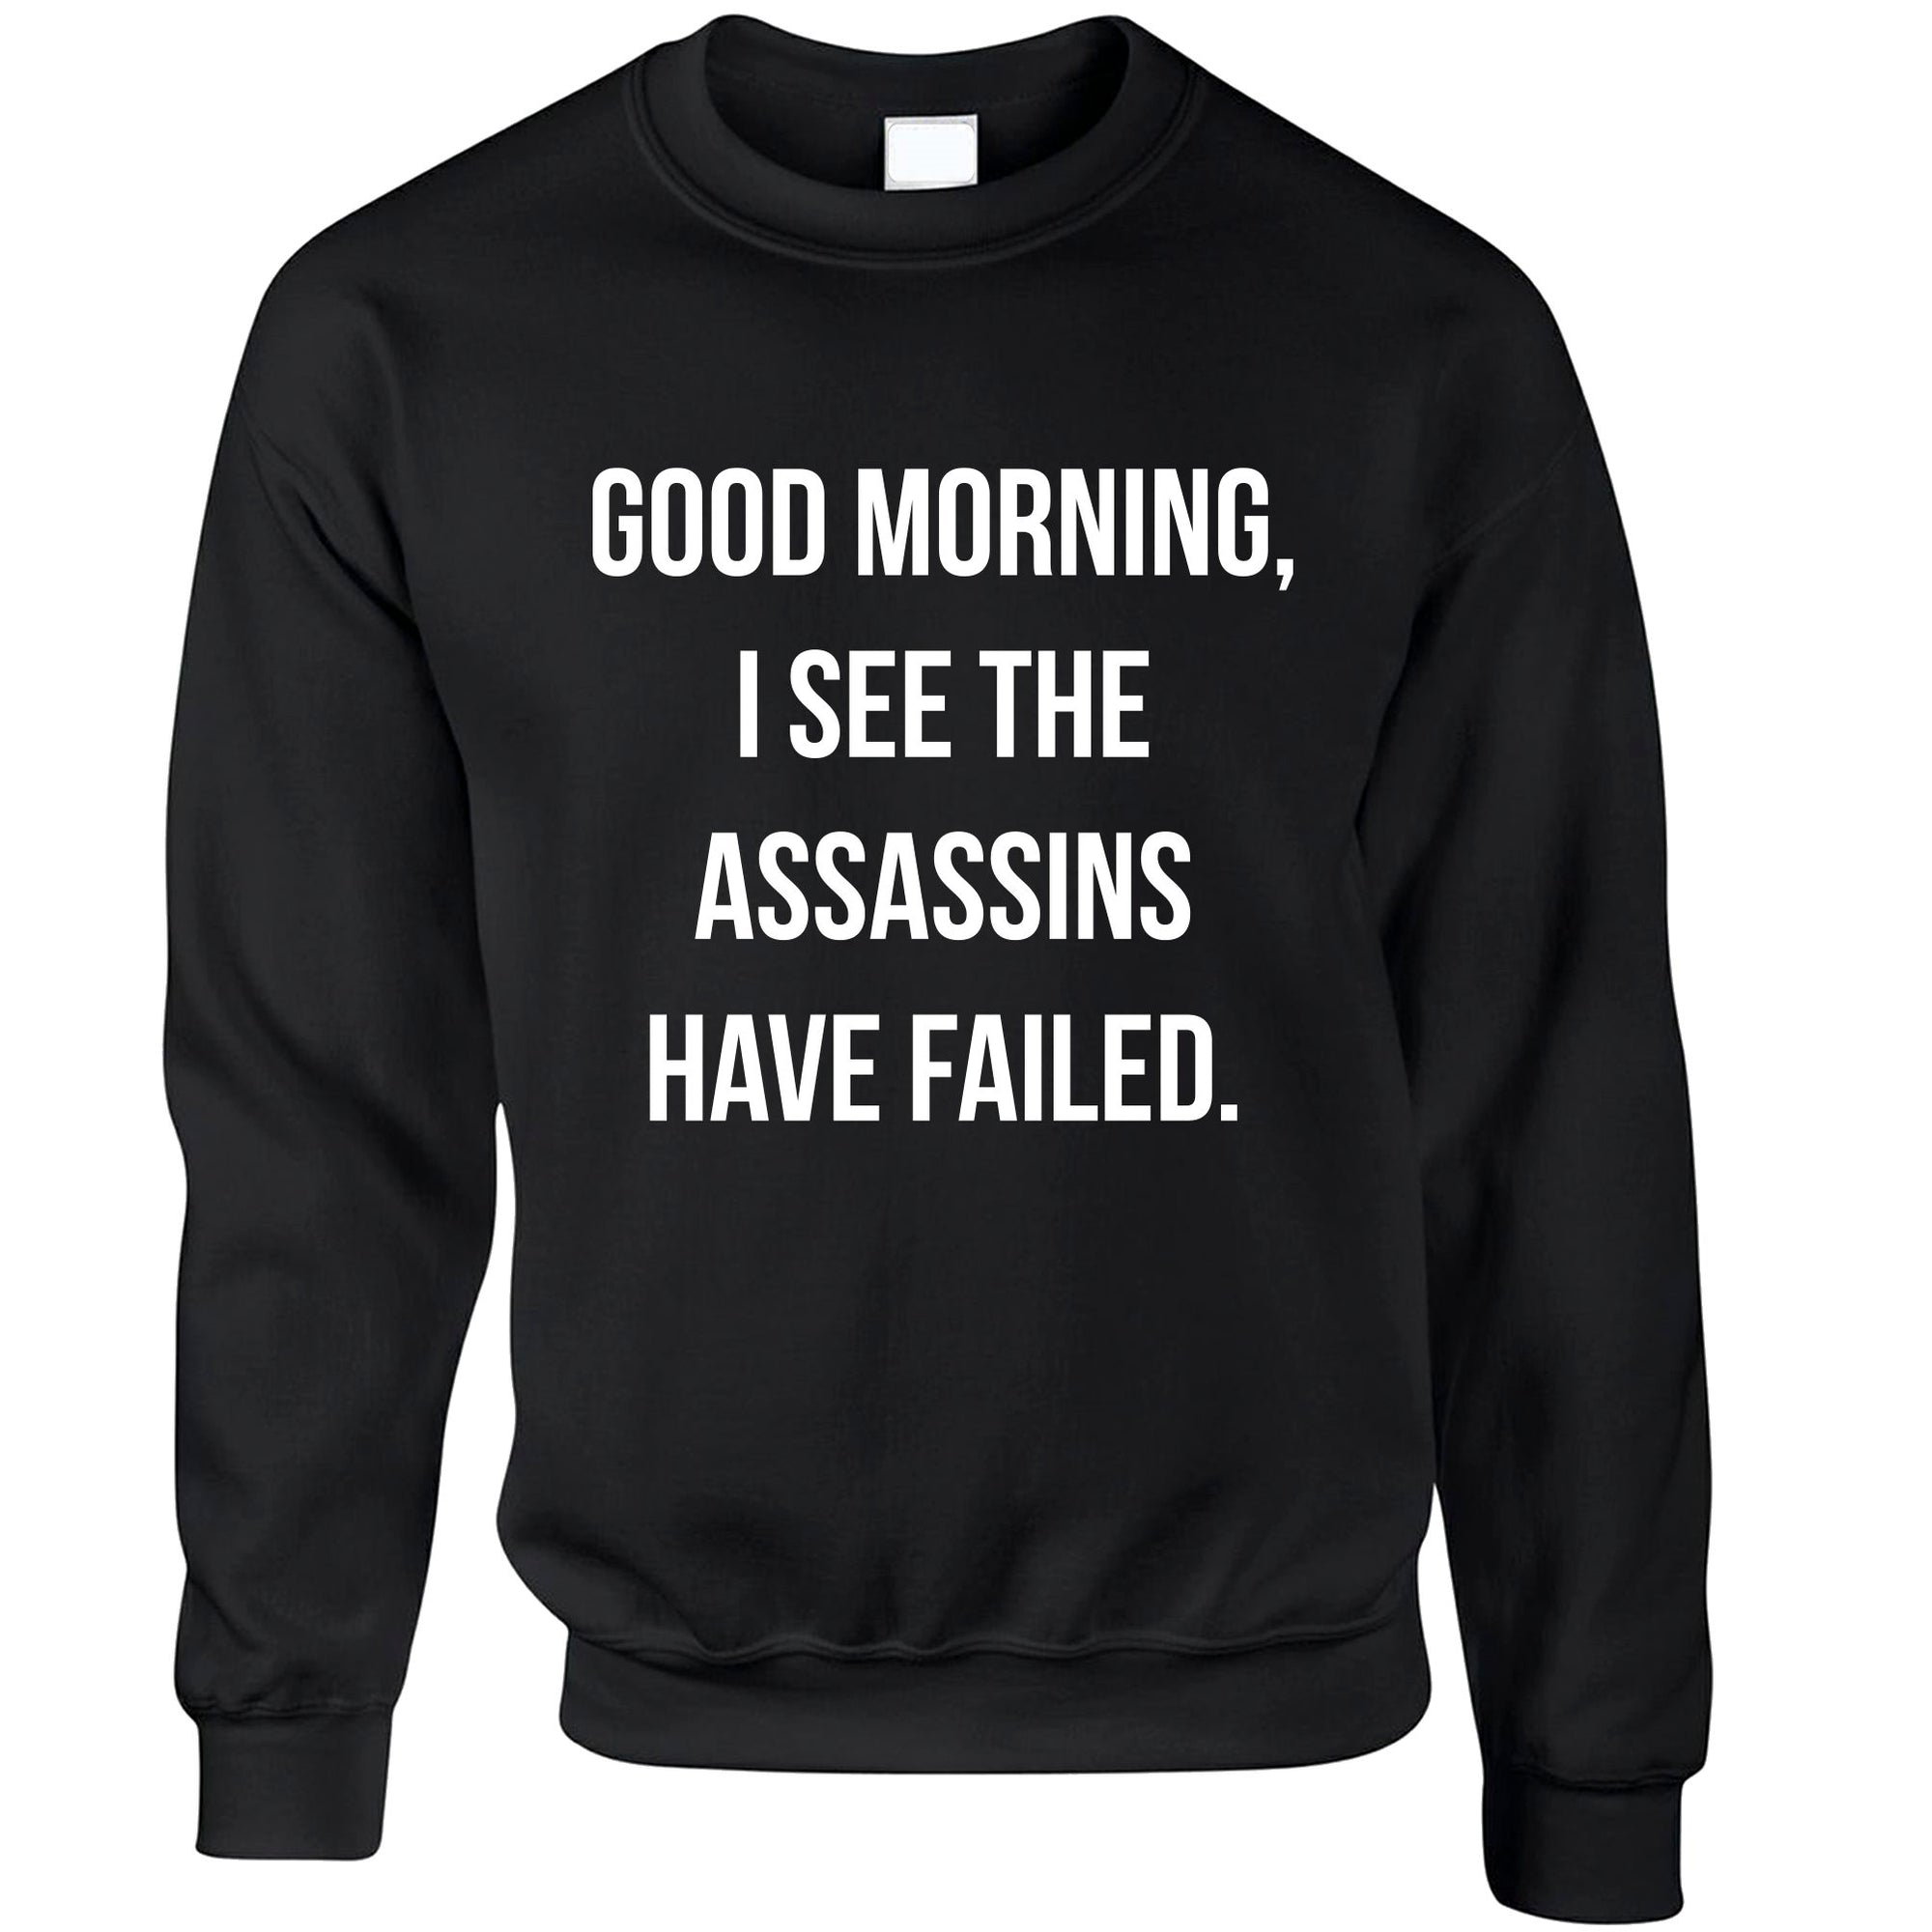 Novelty Jumper I See The Assassins Have Failed Joke Sweatshirt Sweater